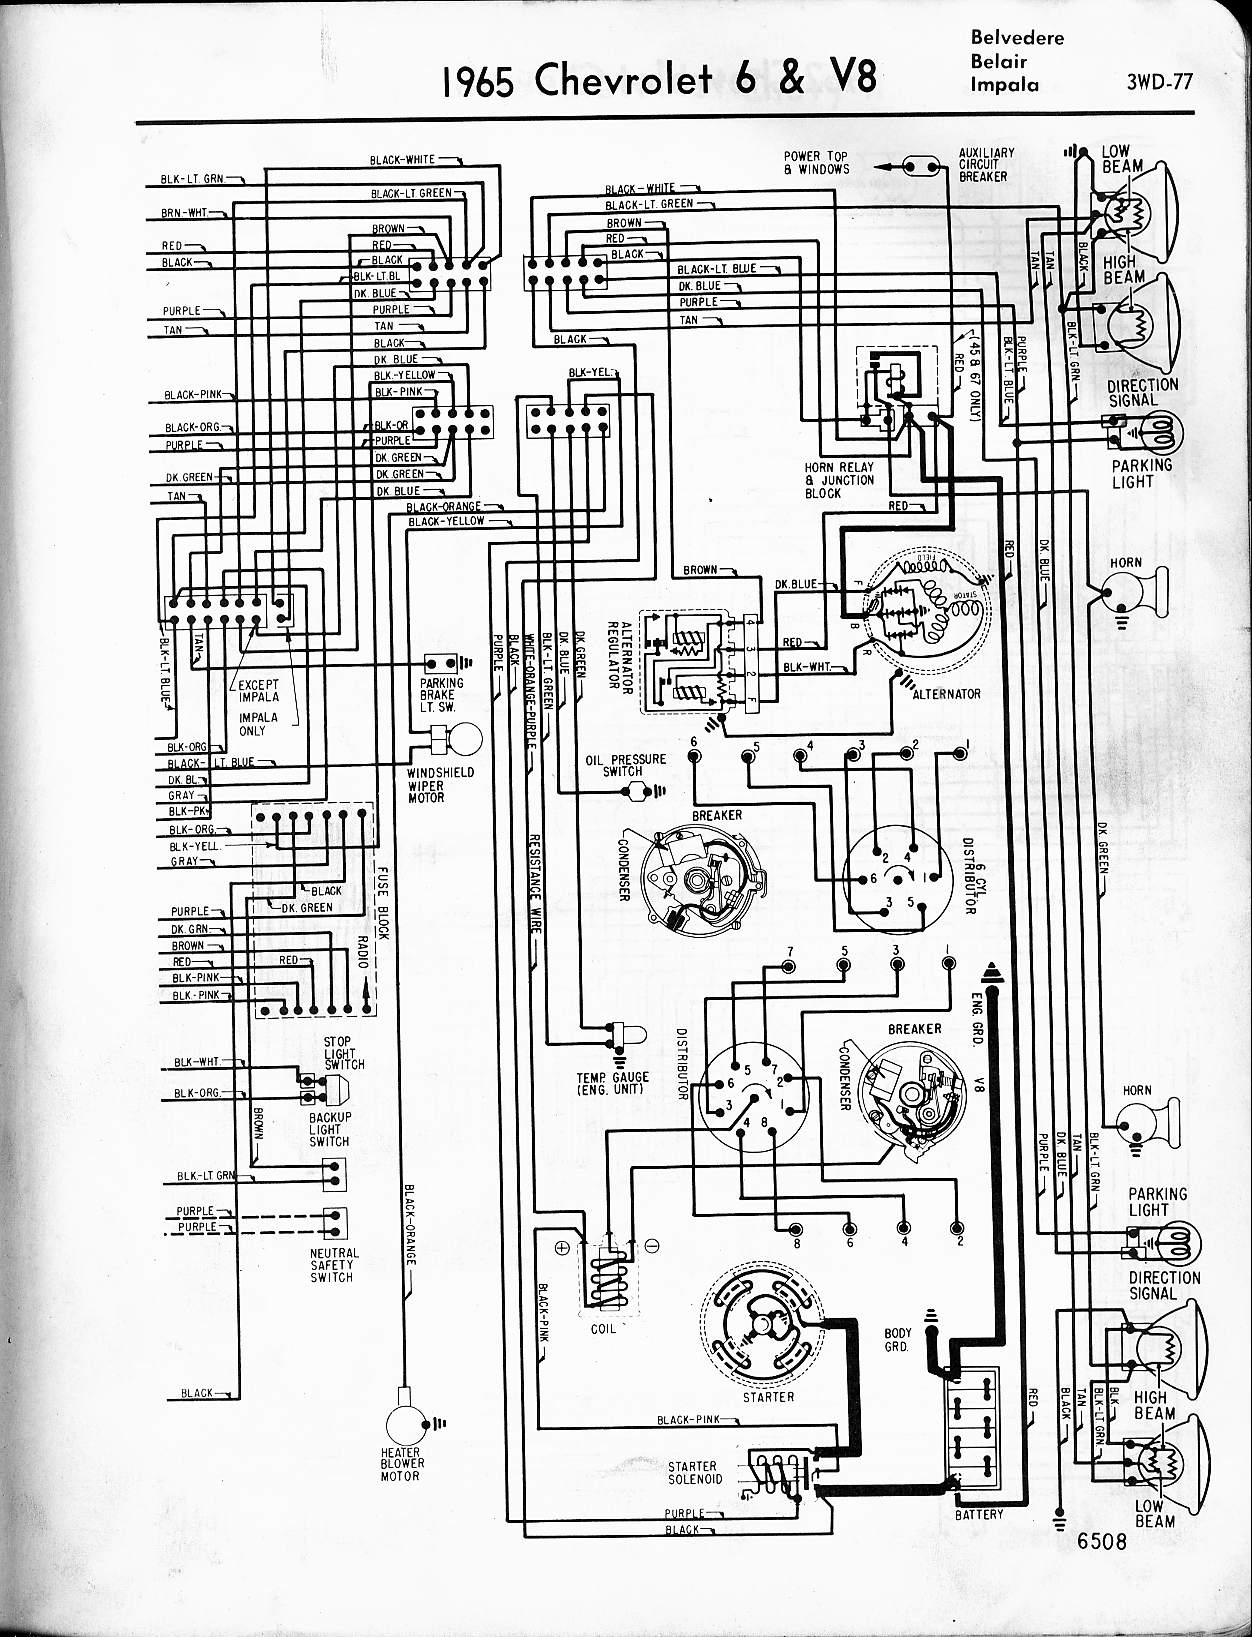 MWireChev65_3WD 077 chevy diagrams 1965 chevy ignition switch wiring diagram at edmiracle.co